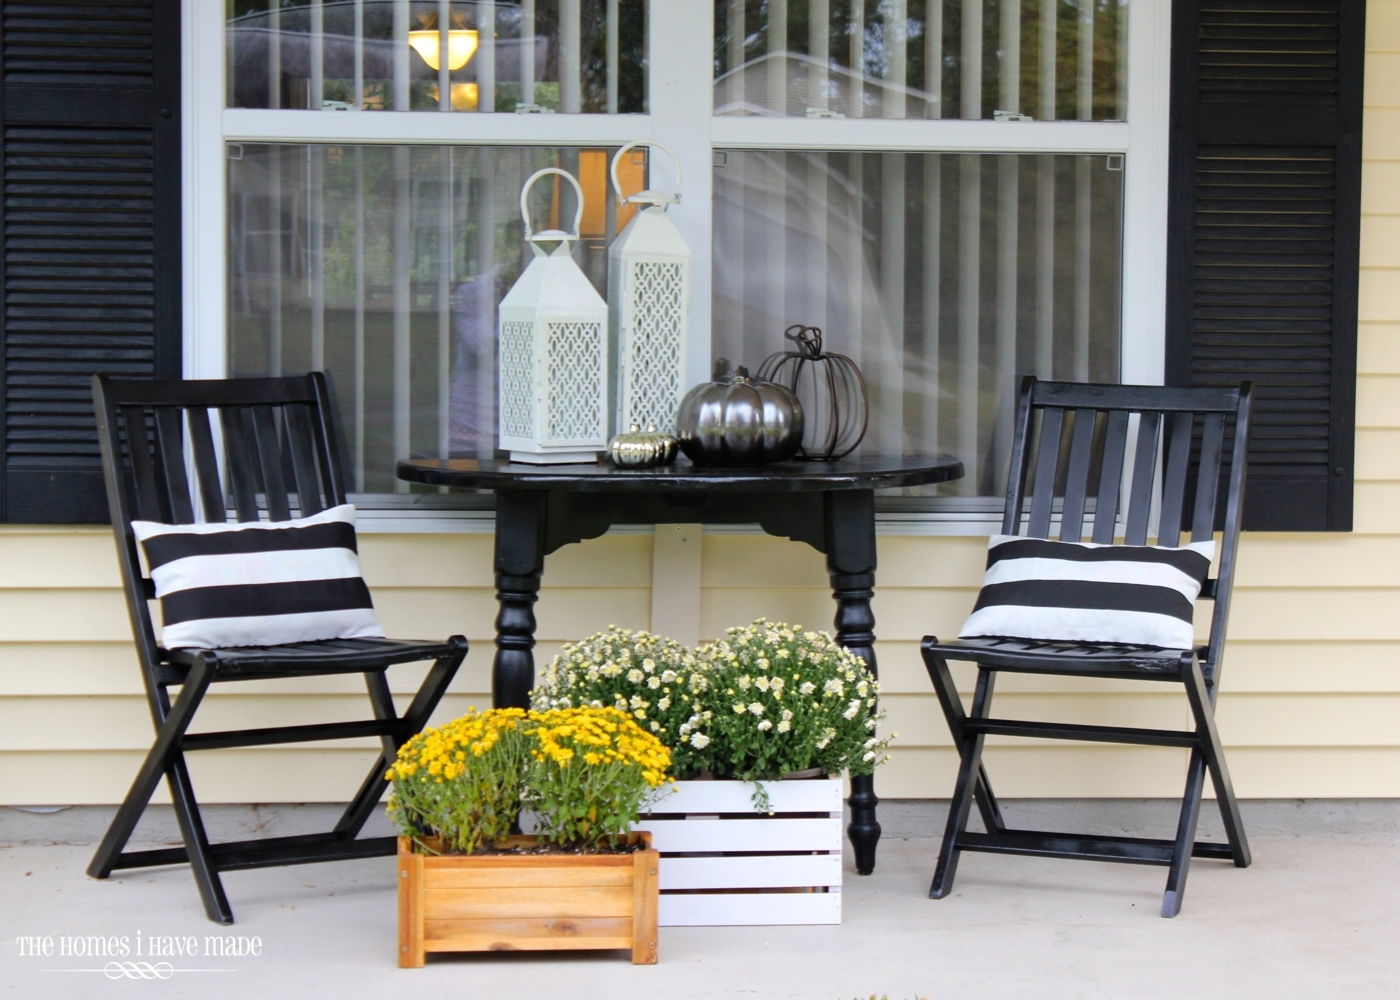 15451376507 31918bf405 1400 1000 happy place for Outdoor furniture for small front porch